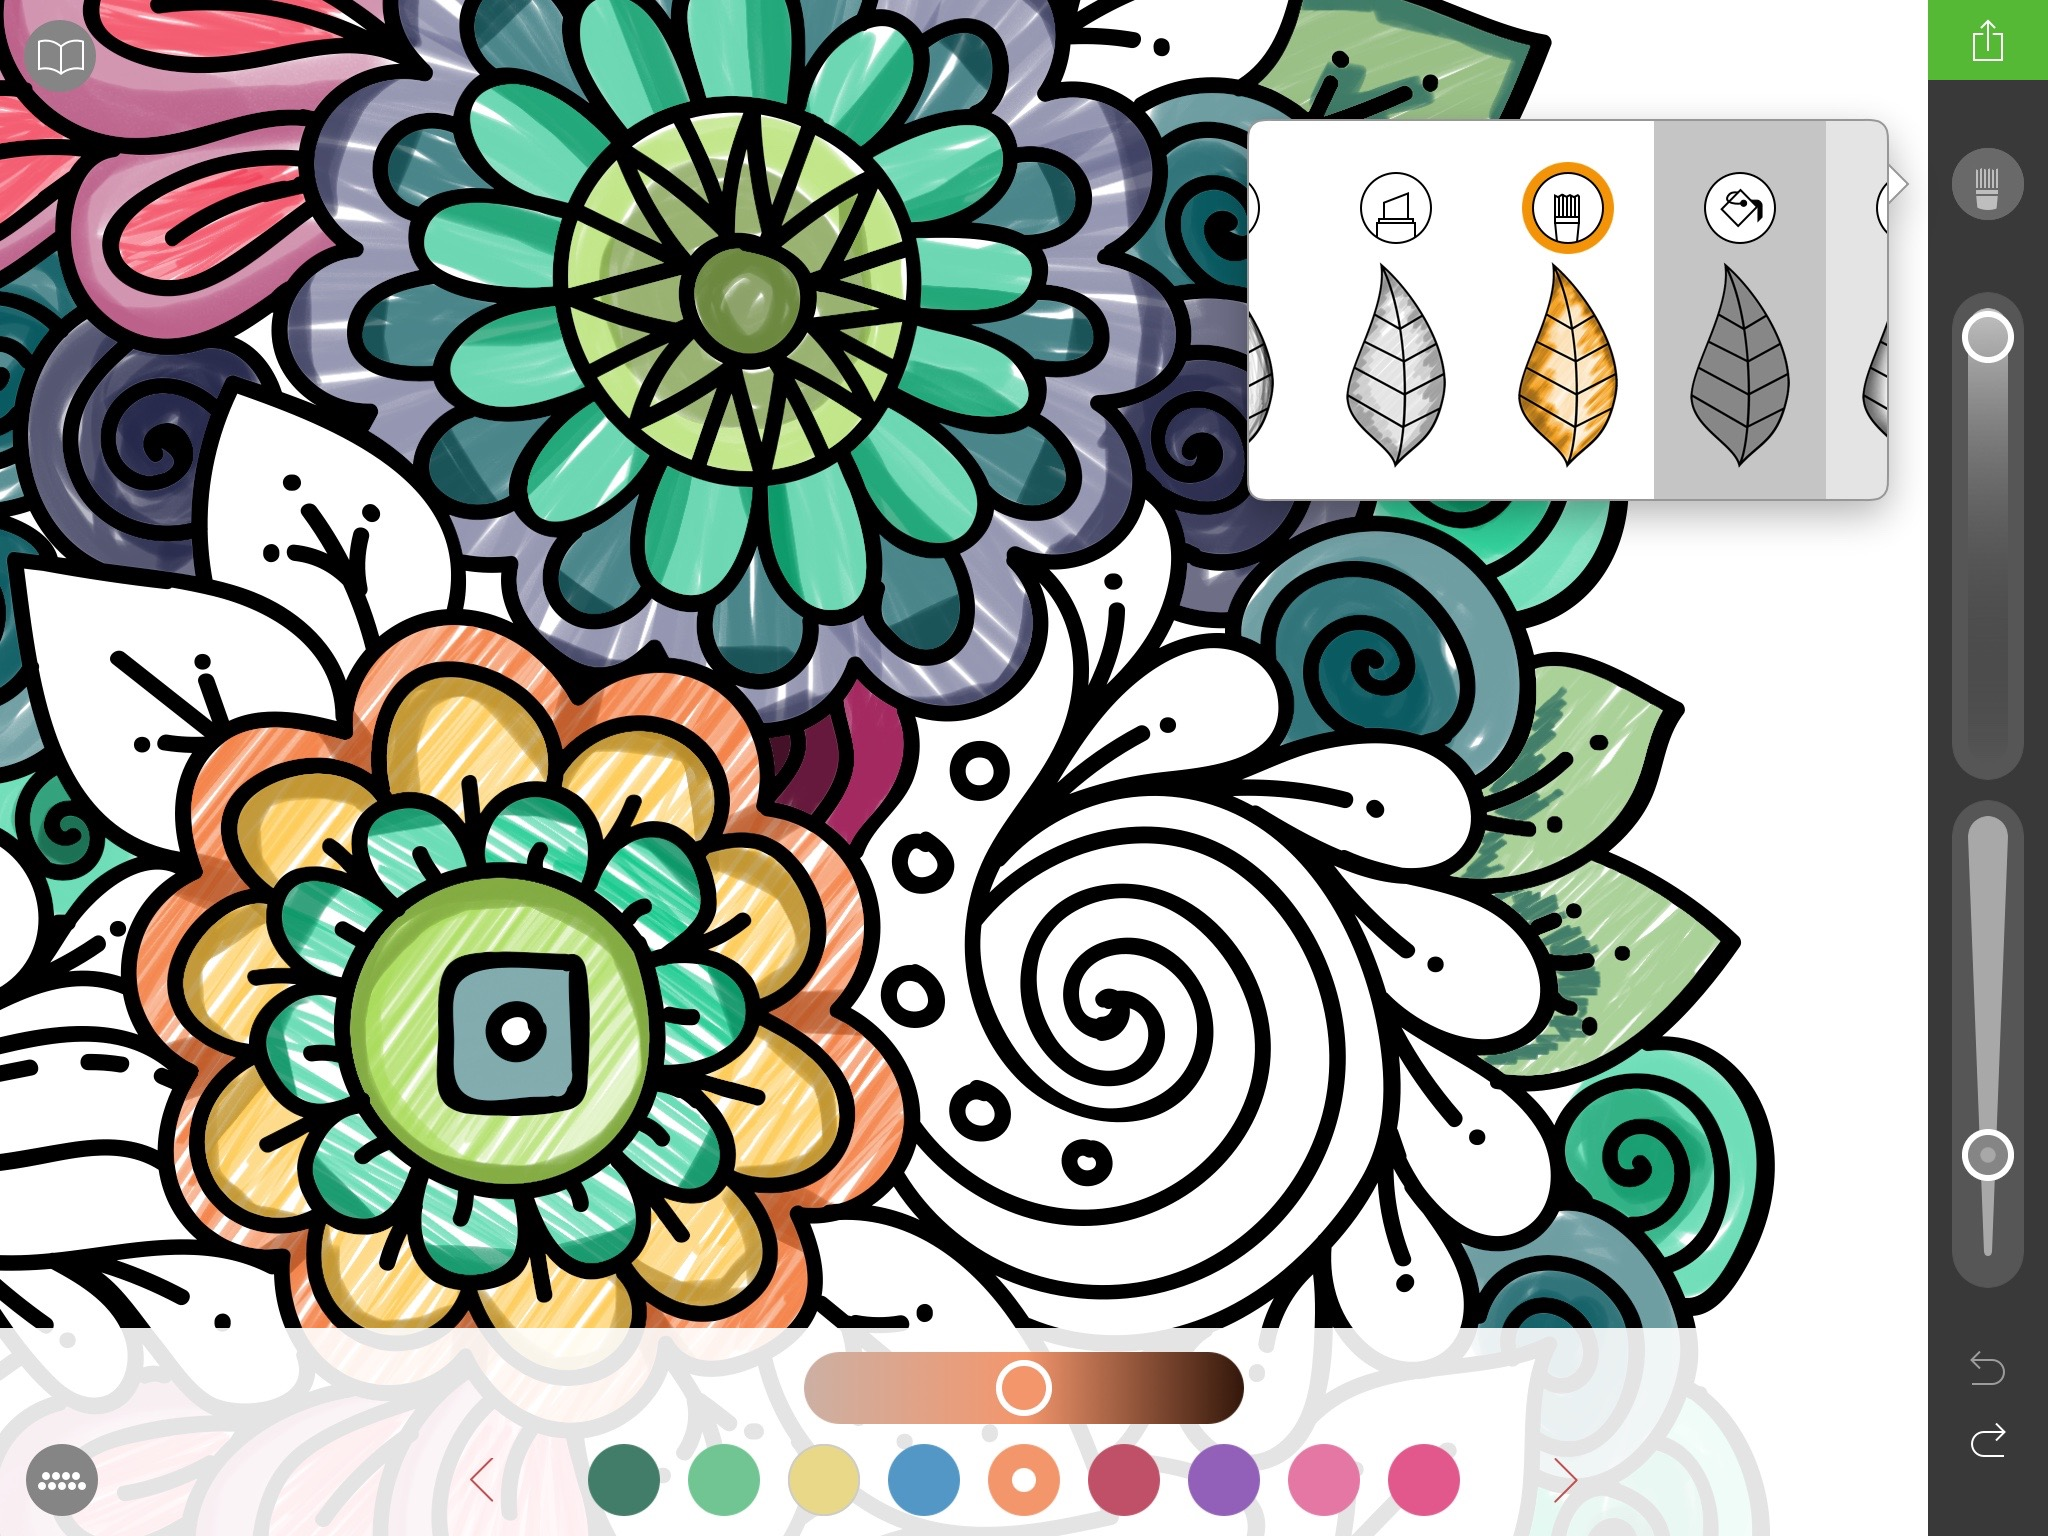 Pigment review: the first coloring book app to get it right